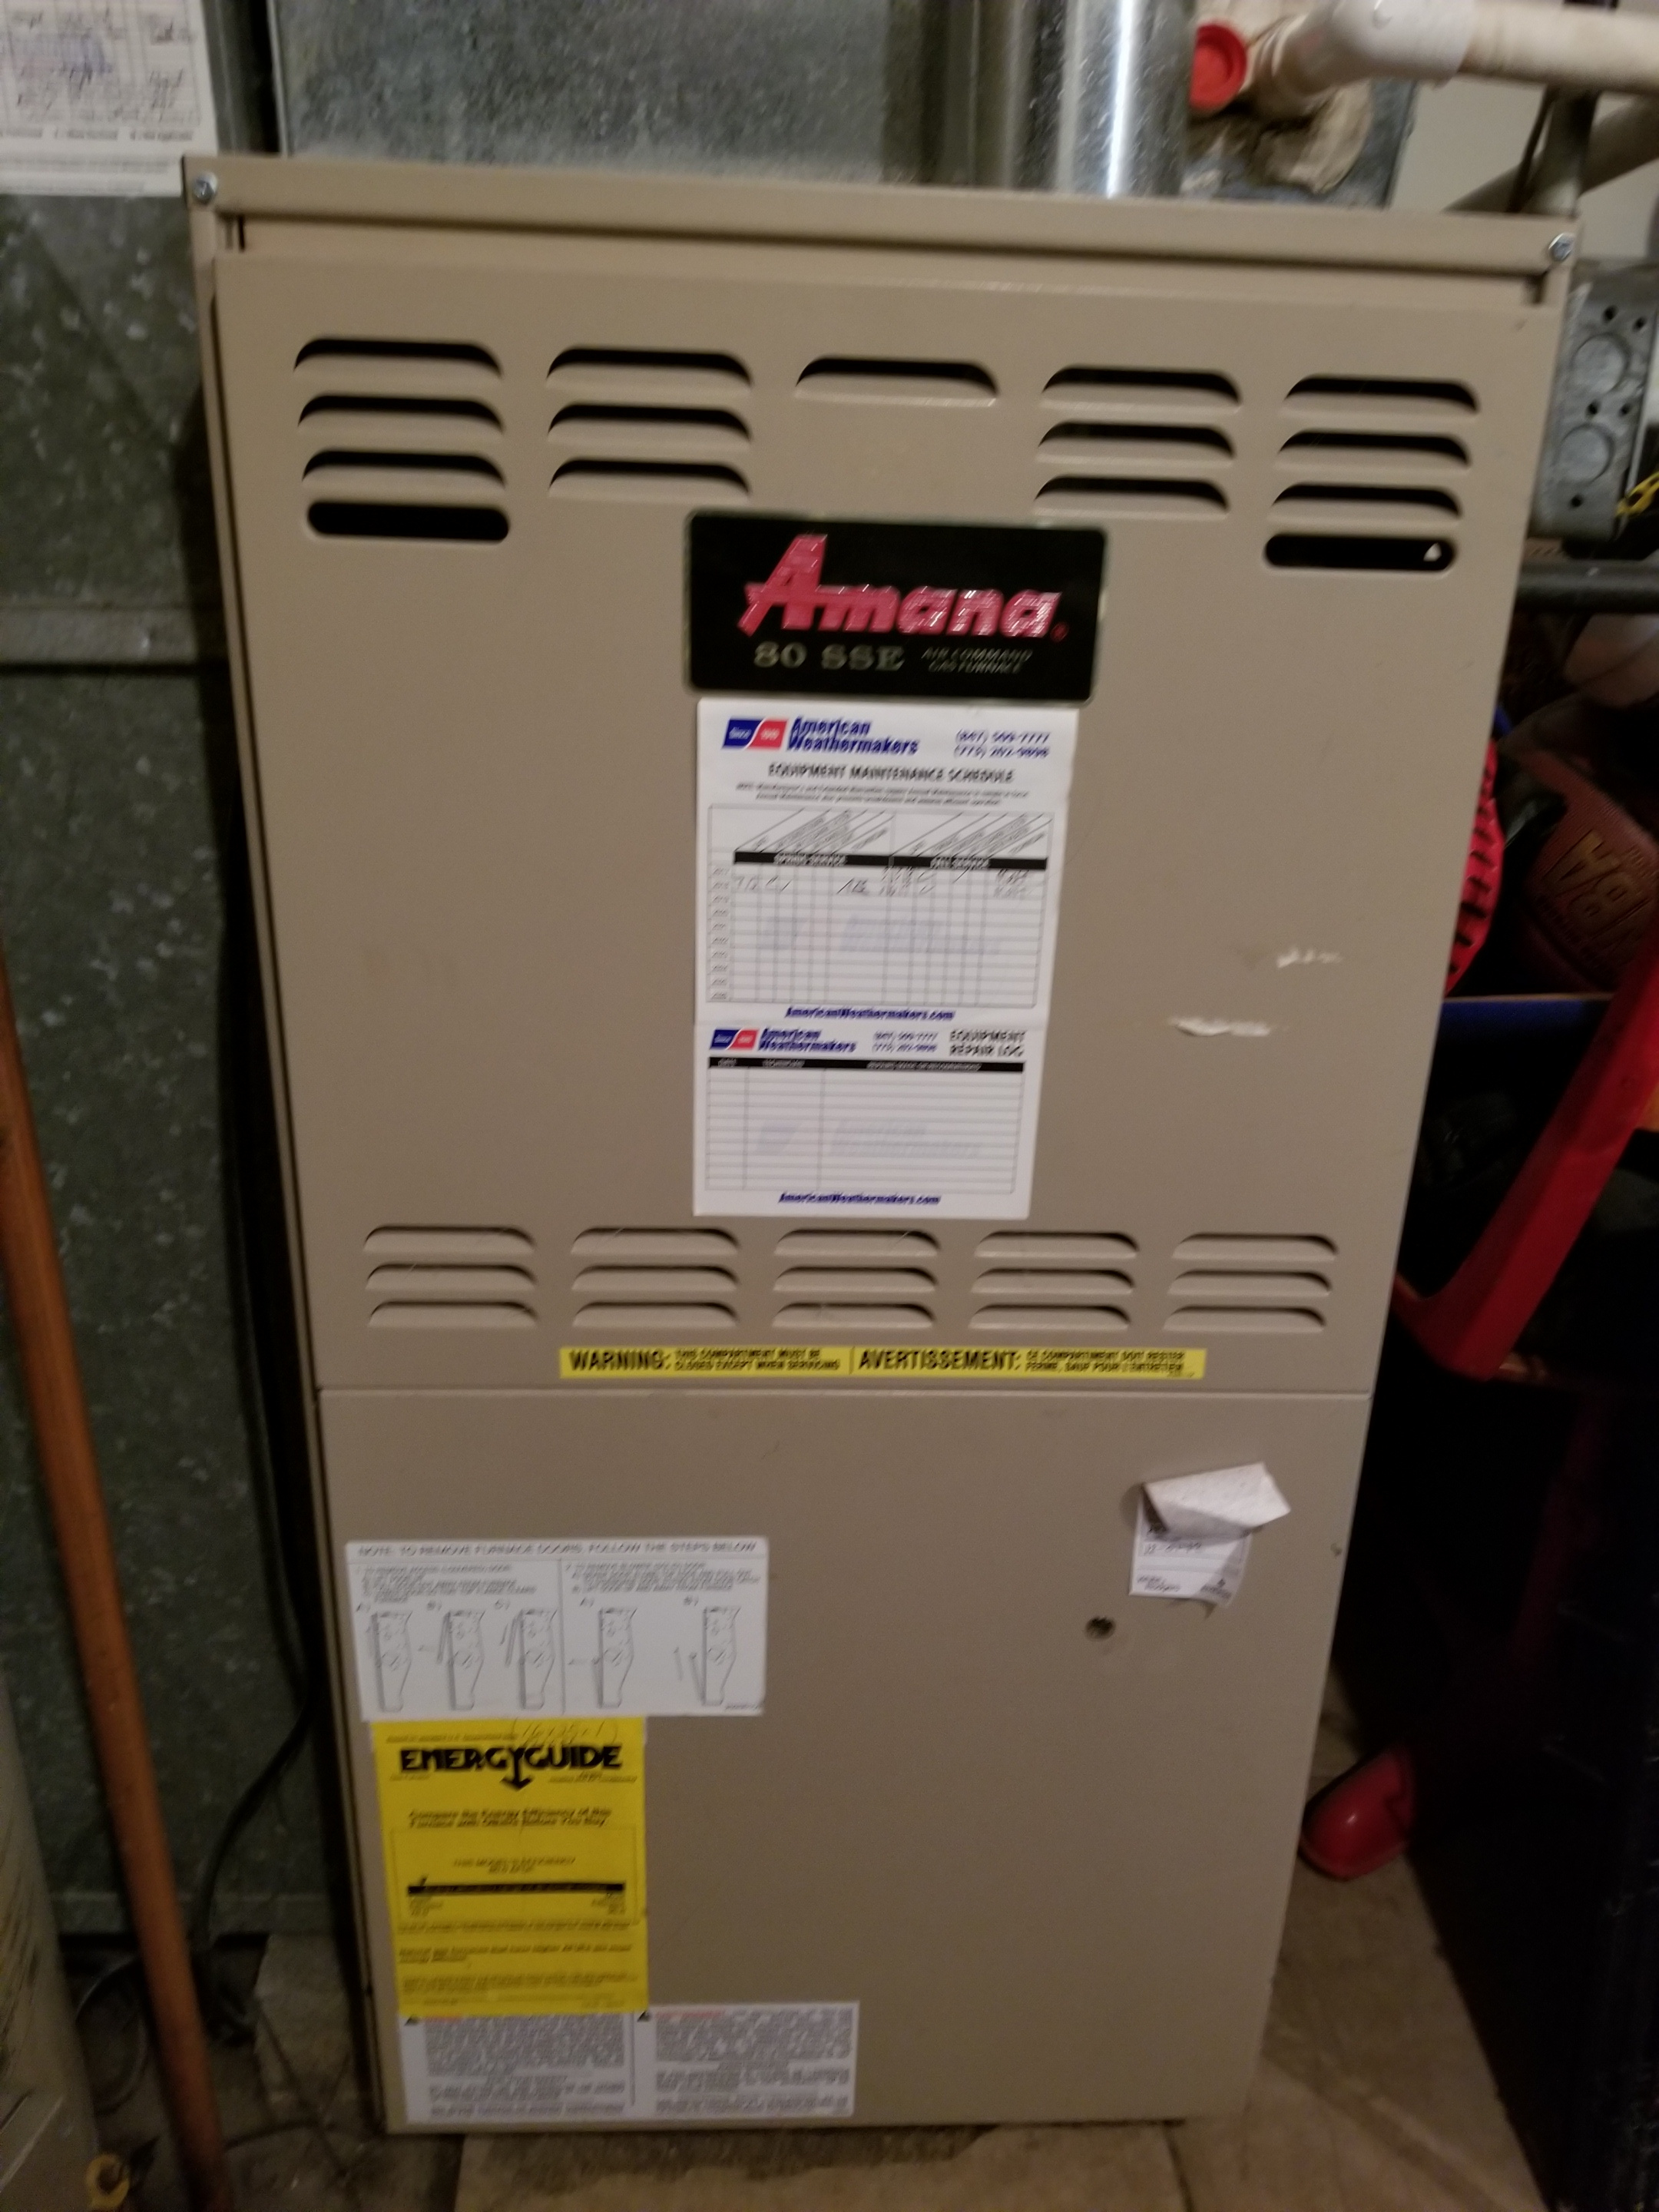 Performed annual maintenance on the Amana furnace and made adjustments to improve the overall efficiency and life expectancy of the equipment